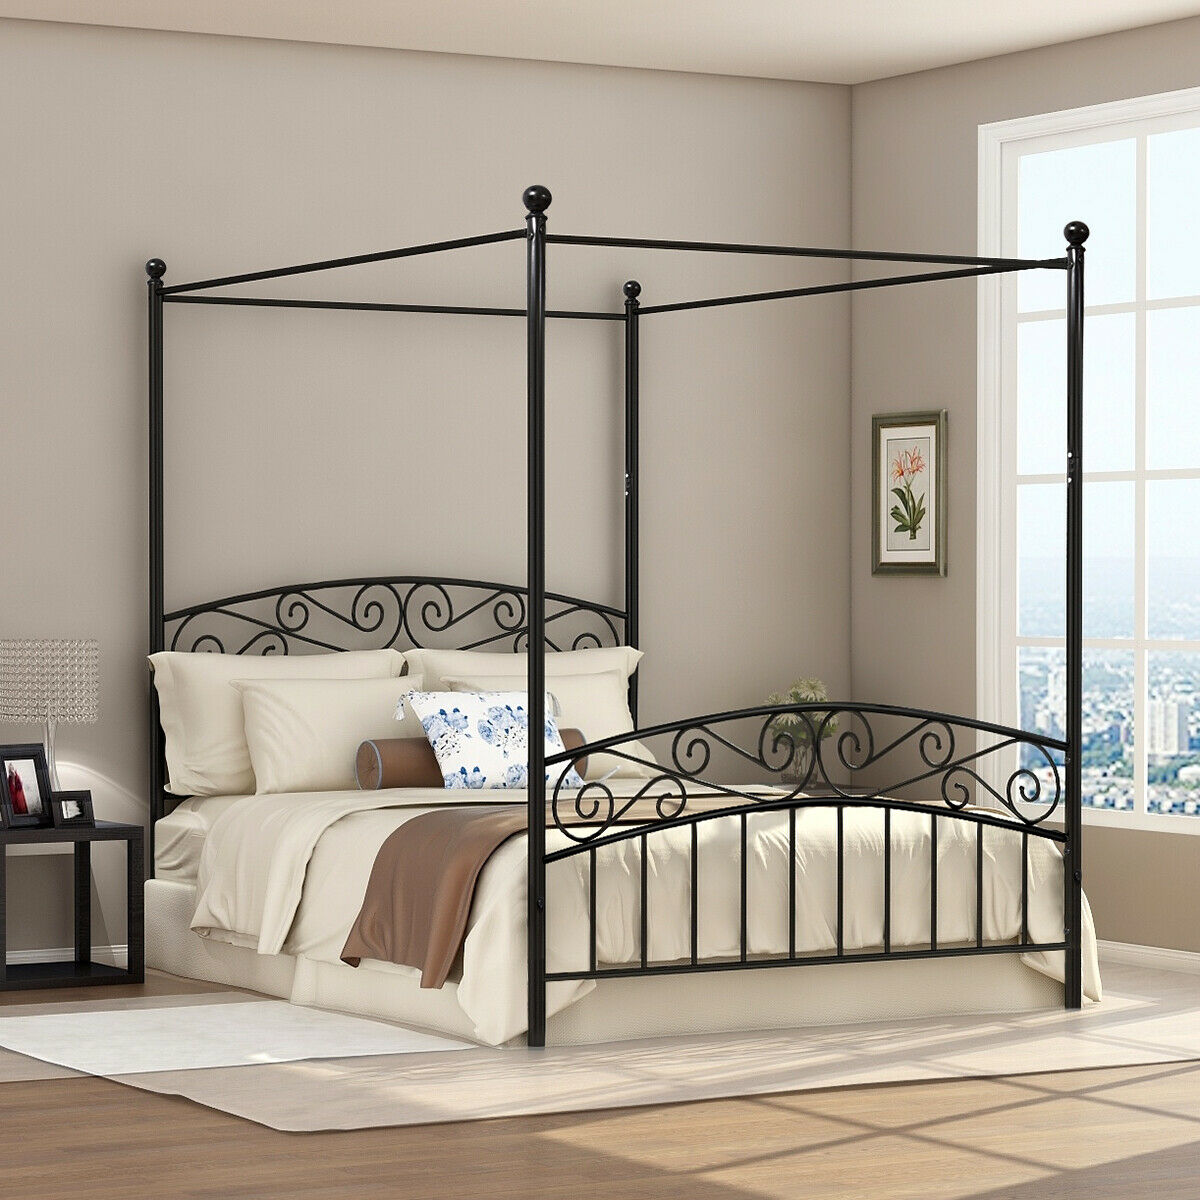 - Iron Metal Queen Size Canopy Poster Bed Frame Corner Posts For